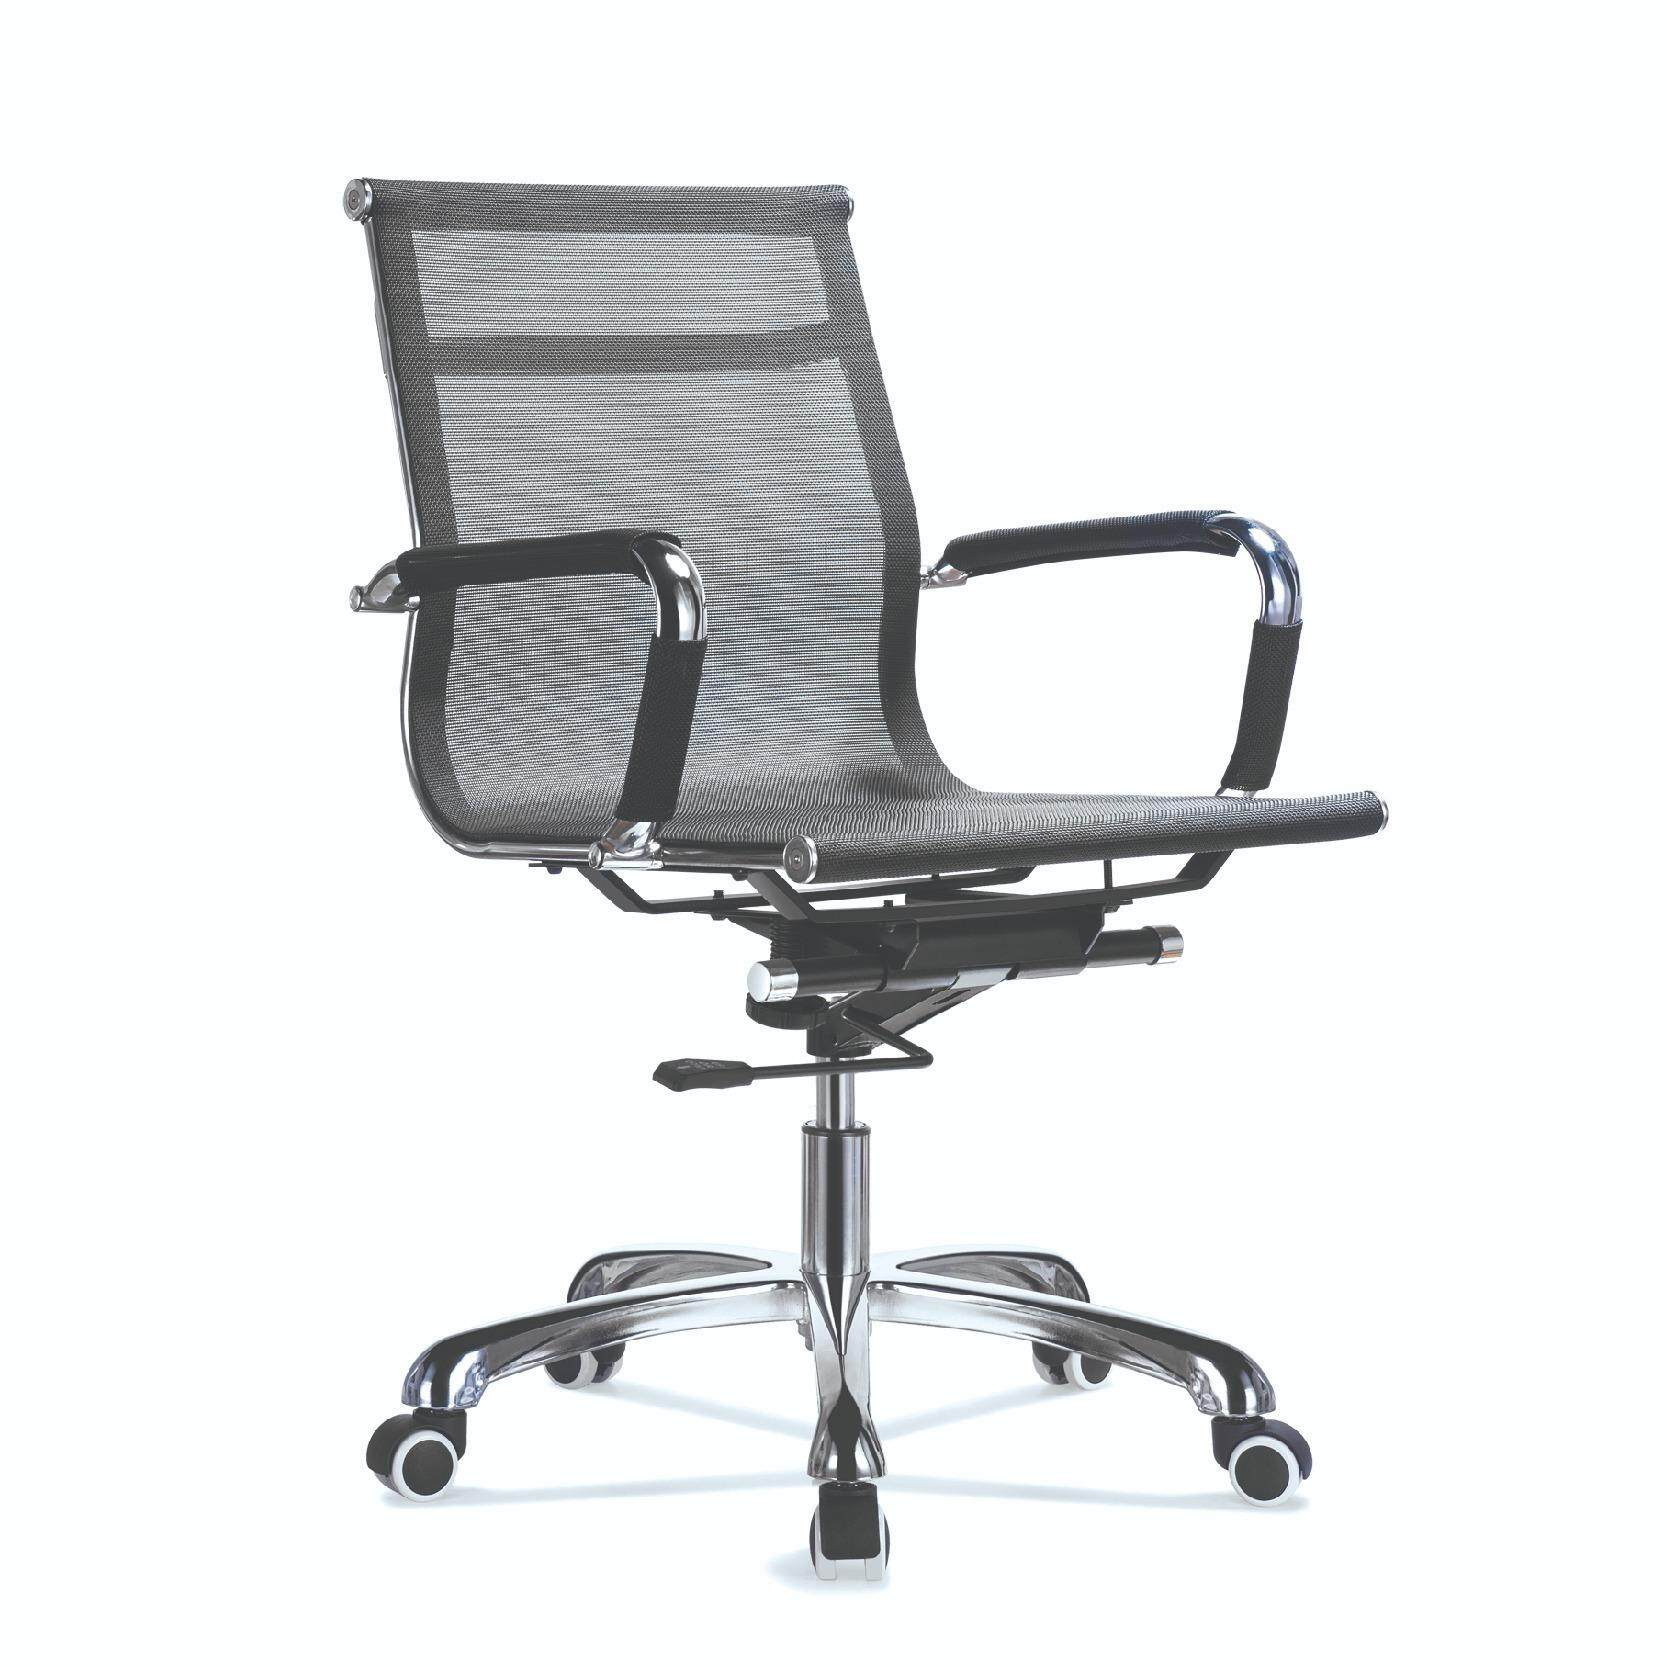 Supreme Furniture Chairs Price Student Chair With Writing Tablet In Malaysia Chair